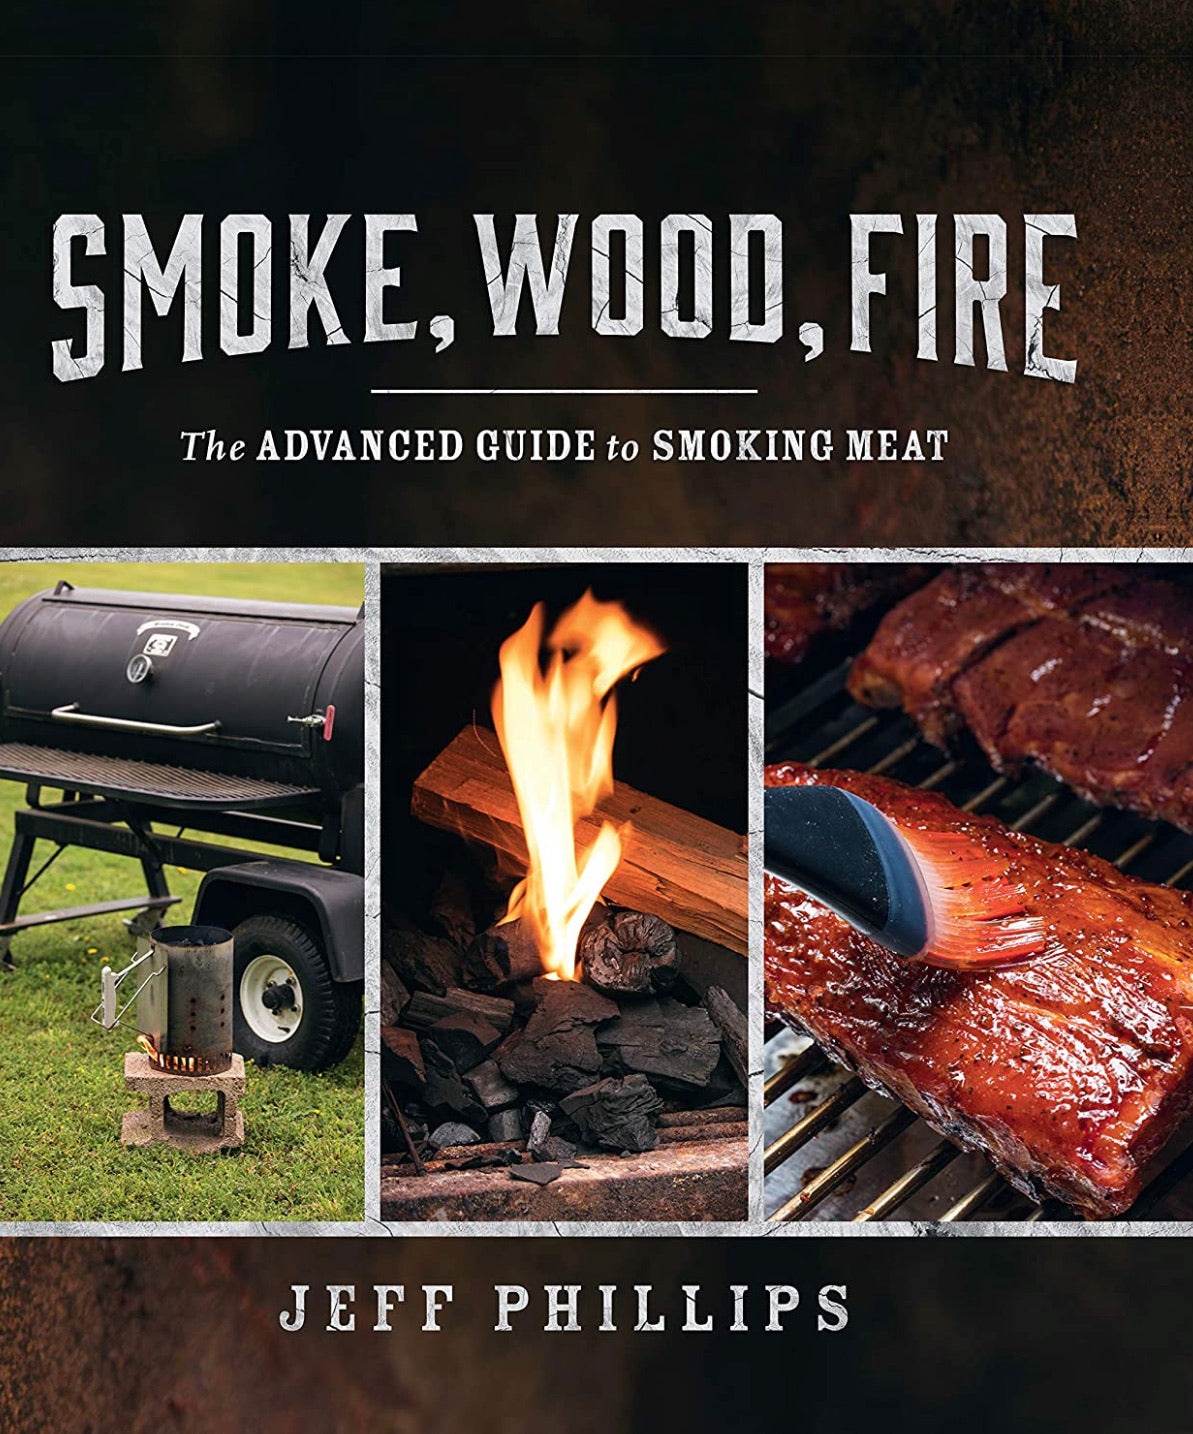 Smoke Wood Fire